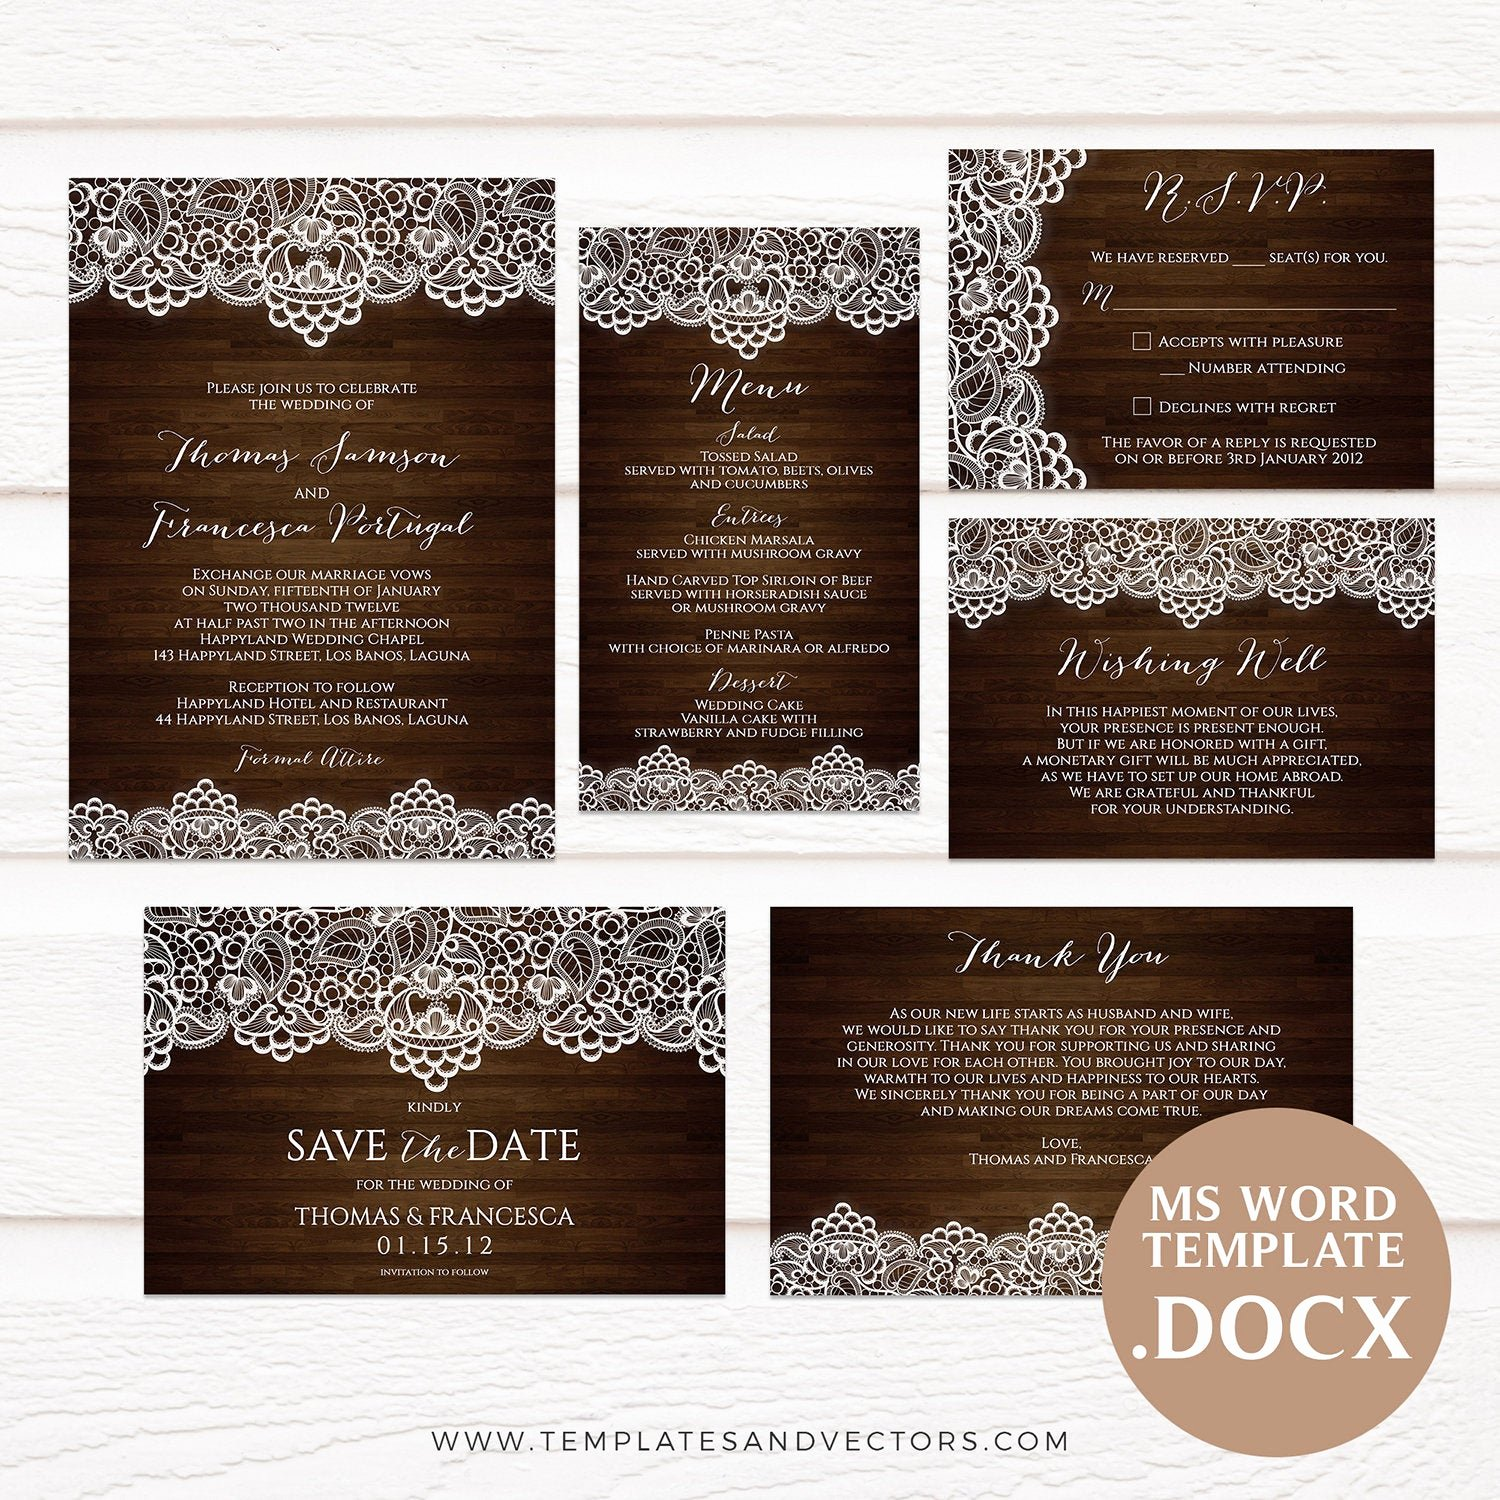 Rustic Wedding Invitation Templates Lovely Dark Wood and Lace Rustic Wedding Invitation Template